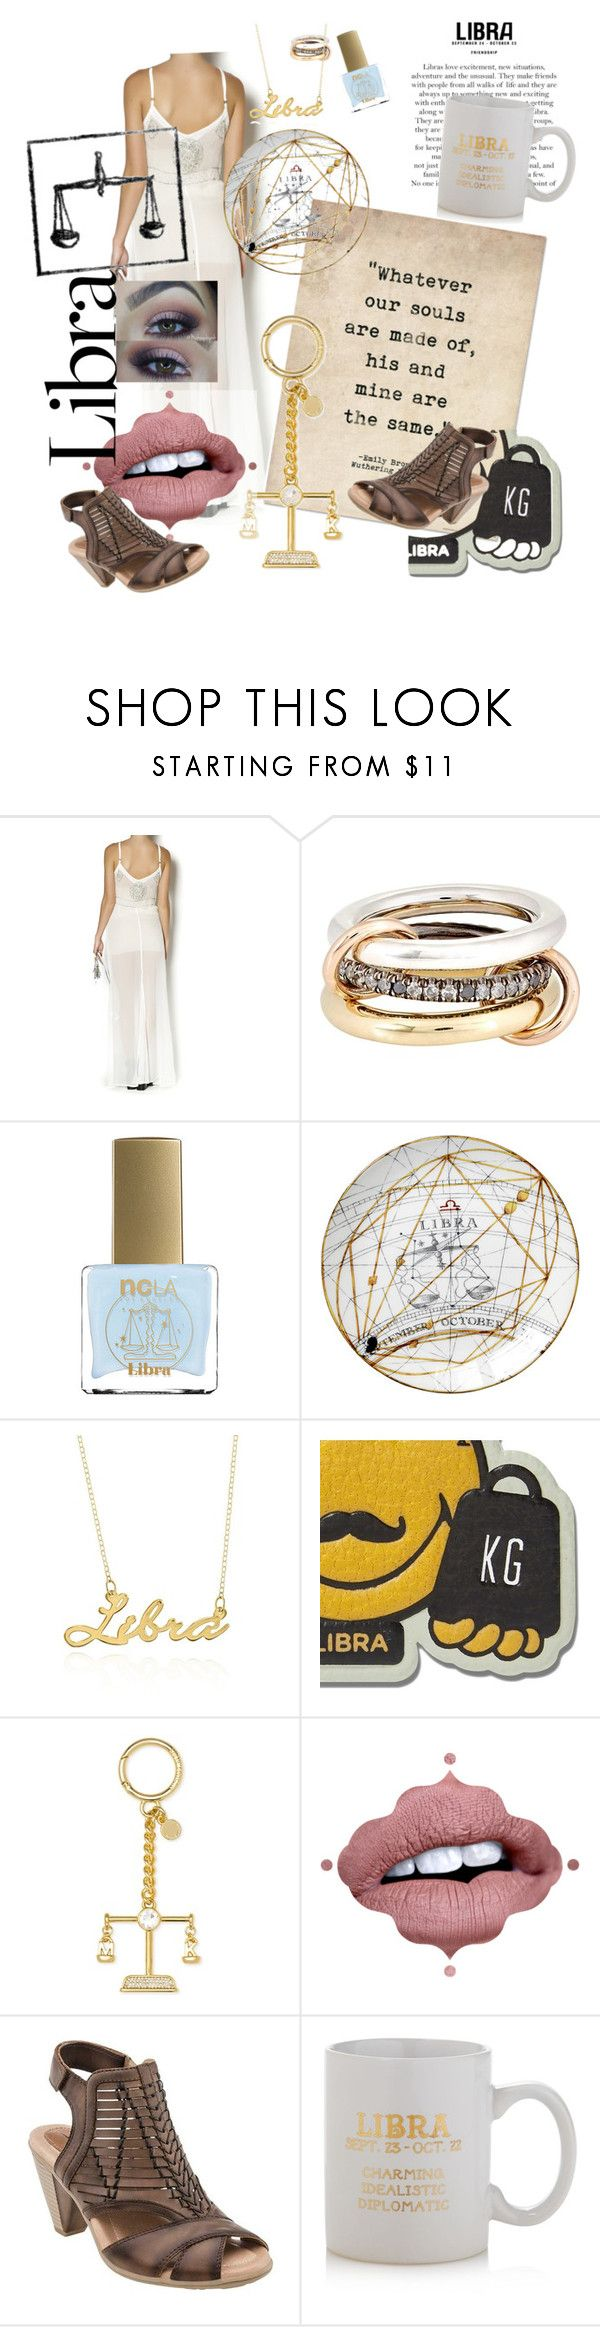 """Libra 4 Life"" by ericjen8685 ❤ liked on Polyvore featuring SPINELLI KILCOLLIN, ncLA, Belk & Co., Anya Hindmarch, Michael Kors, Earth and Sparrow & Wren"